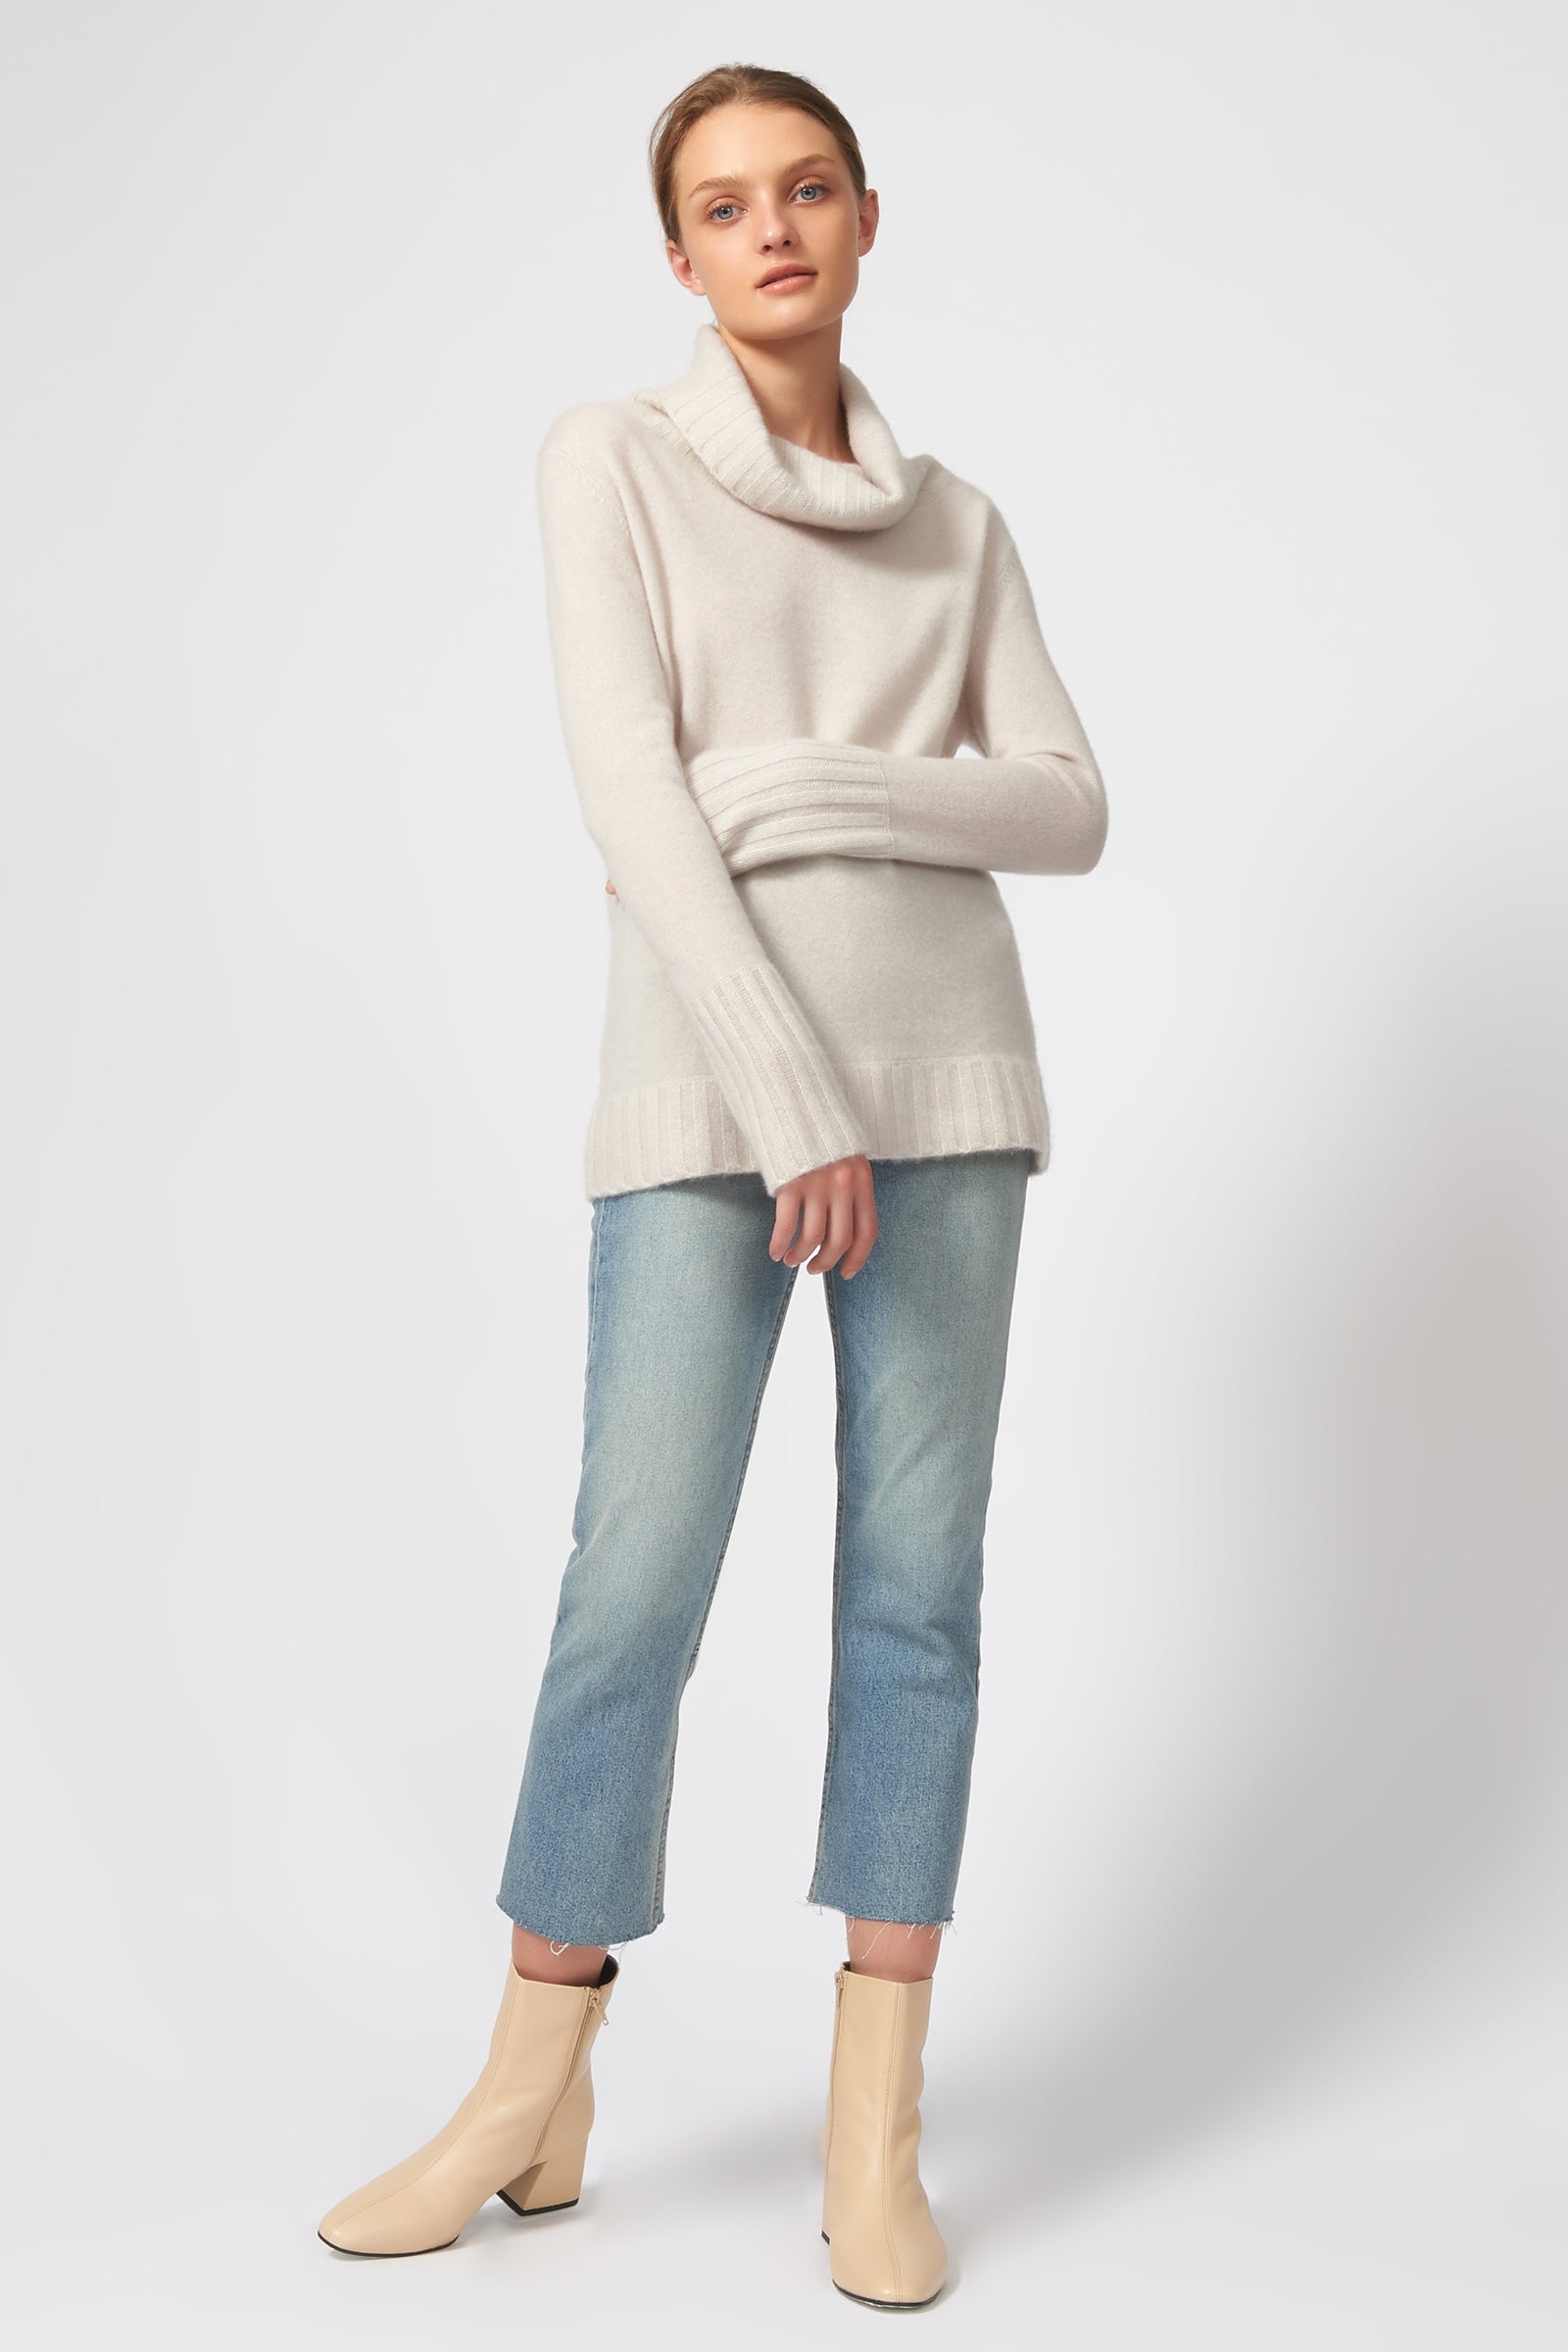 Kal Rieman Cashmere Cowel T-Neck in Haze on Model Front Full View